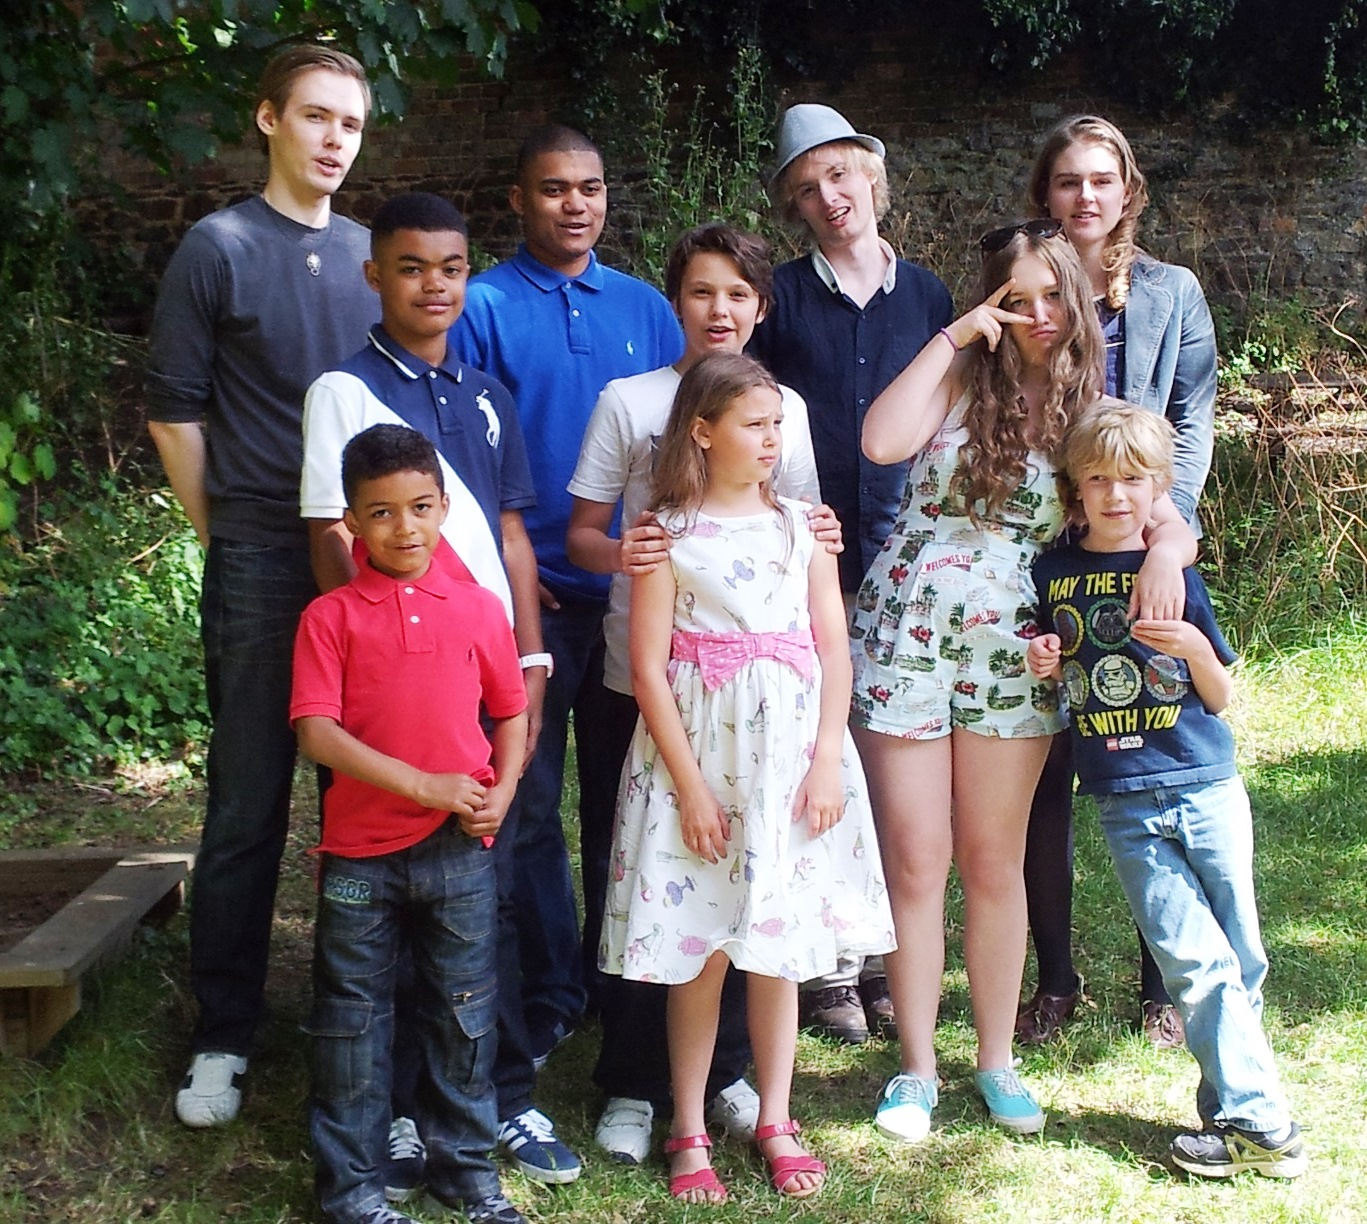 Jeremy & Brenda's grandchildren. Parents name in brackets L-R Front: Benjamin (Chris), Willow (Vic), Emmy & Toby (Genevieve) Middle: Samuel (Chris), Dylan (Vic).  Back: Storm (Vic), Matthew (Chris), Kal (Vic), Florrie (Dominic)